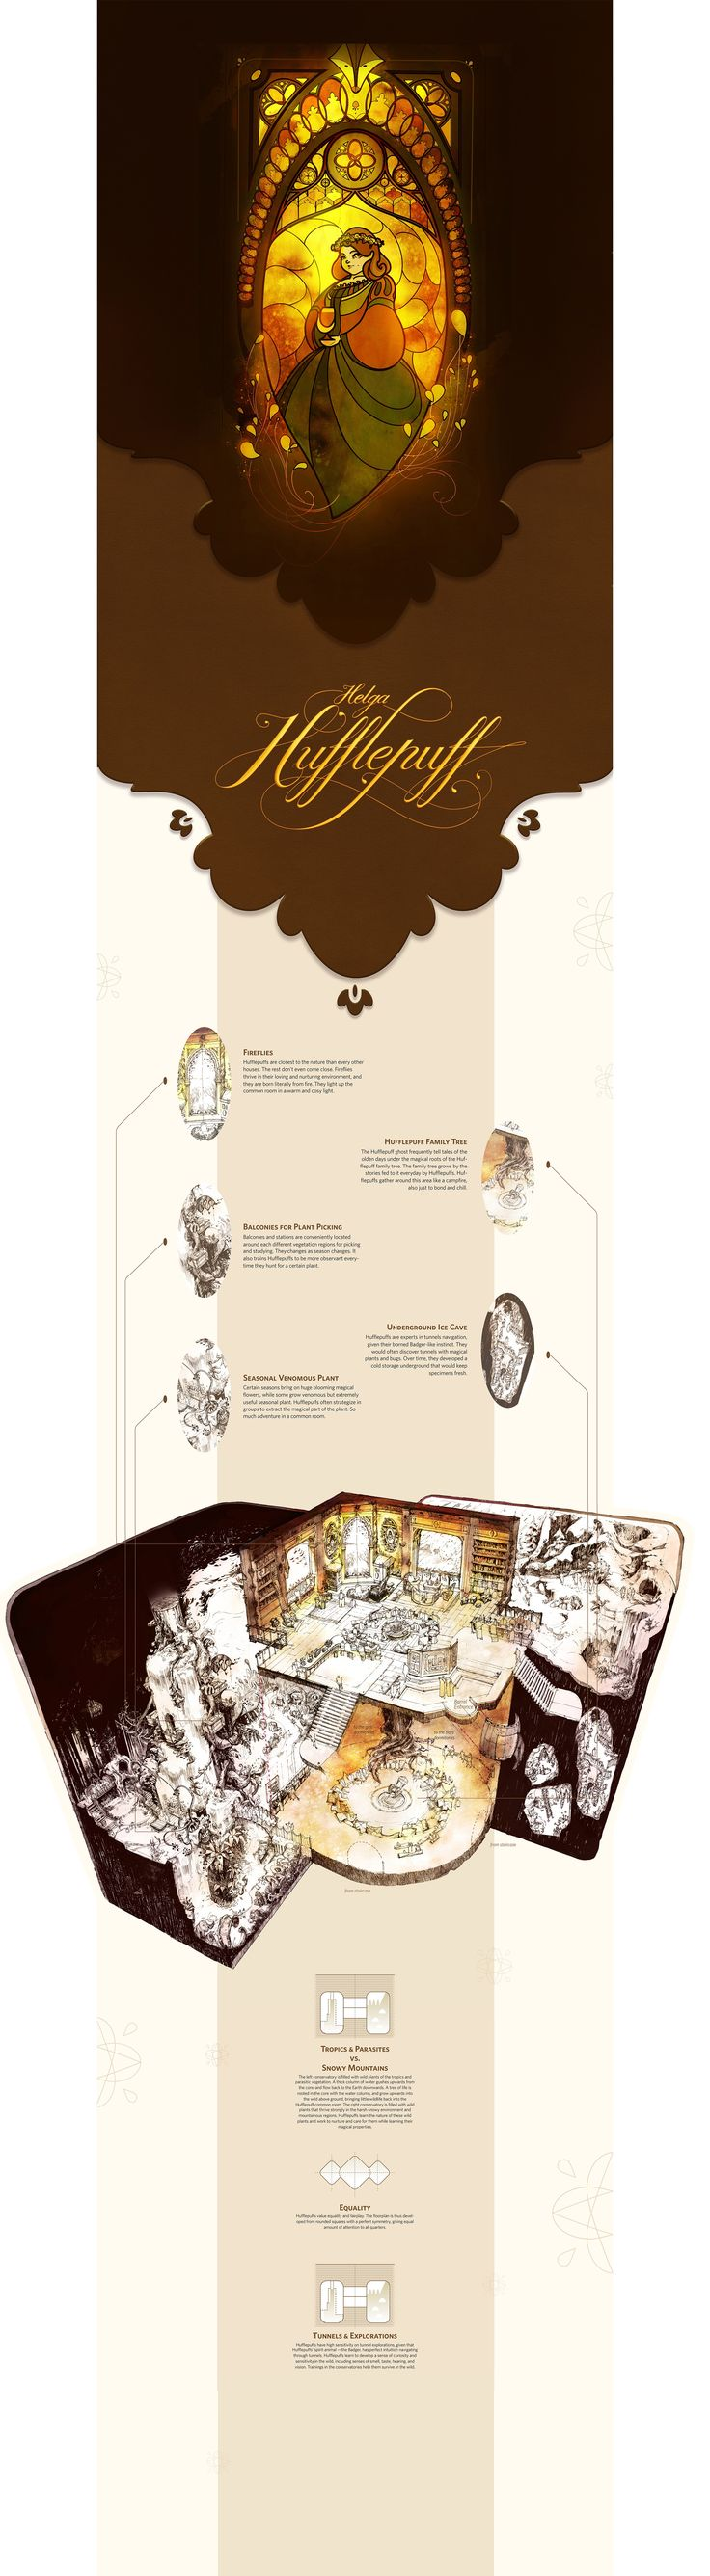 OVERVIEW This Harry Potter Redesign Project is created for my senior show at Art Center College of Design, which just happened in Spring 2016. The focus was to reimagine the four Hogwarts houses, s…